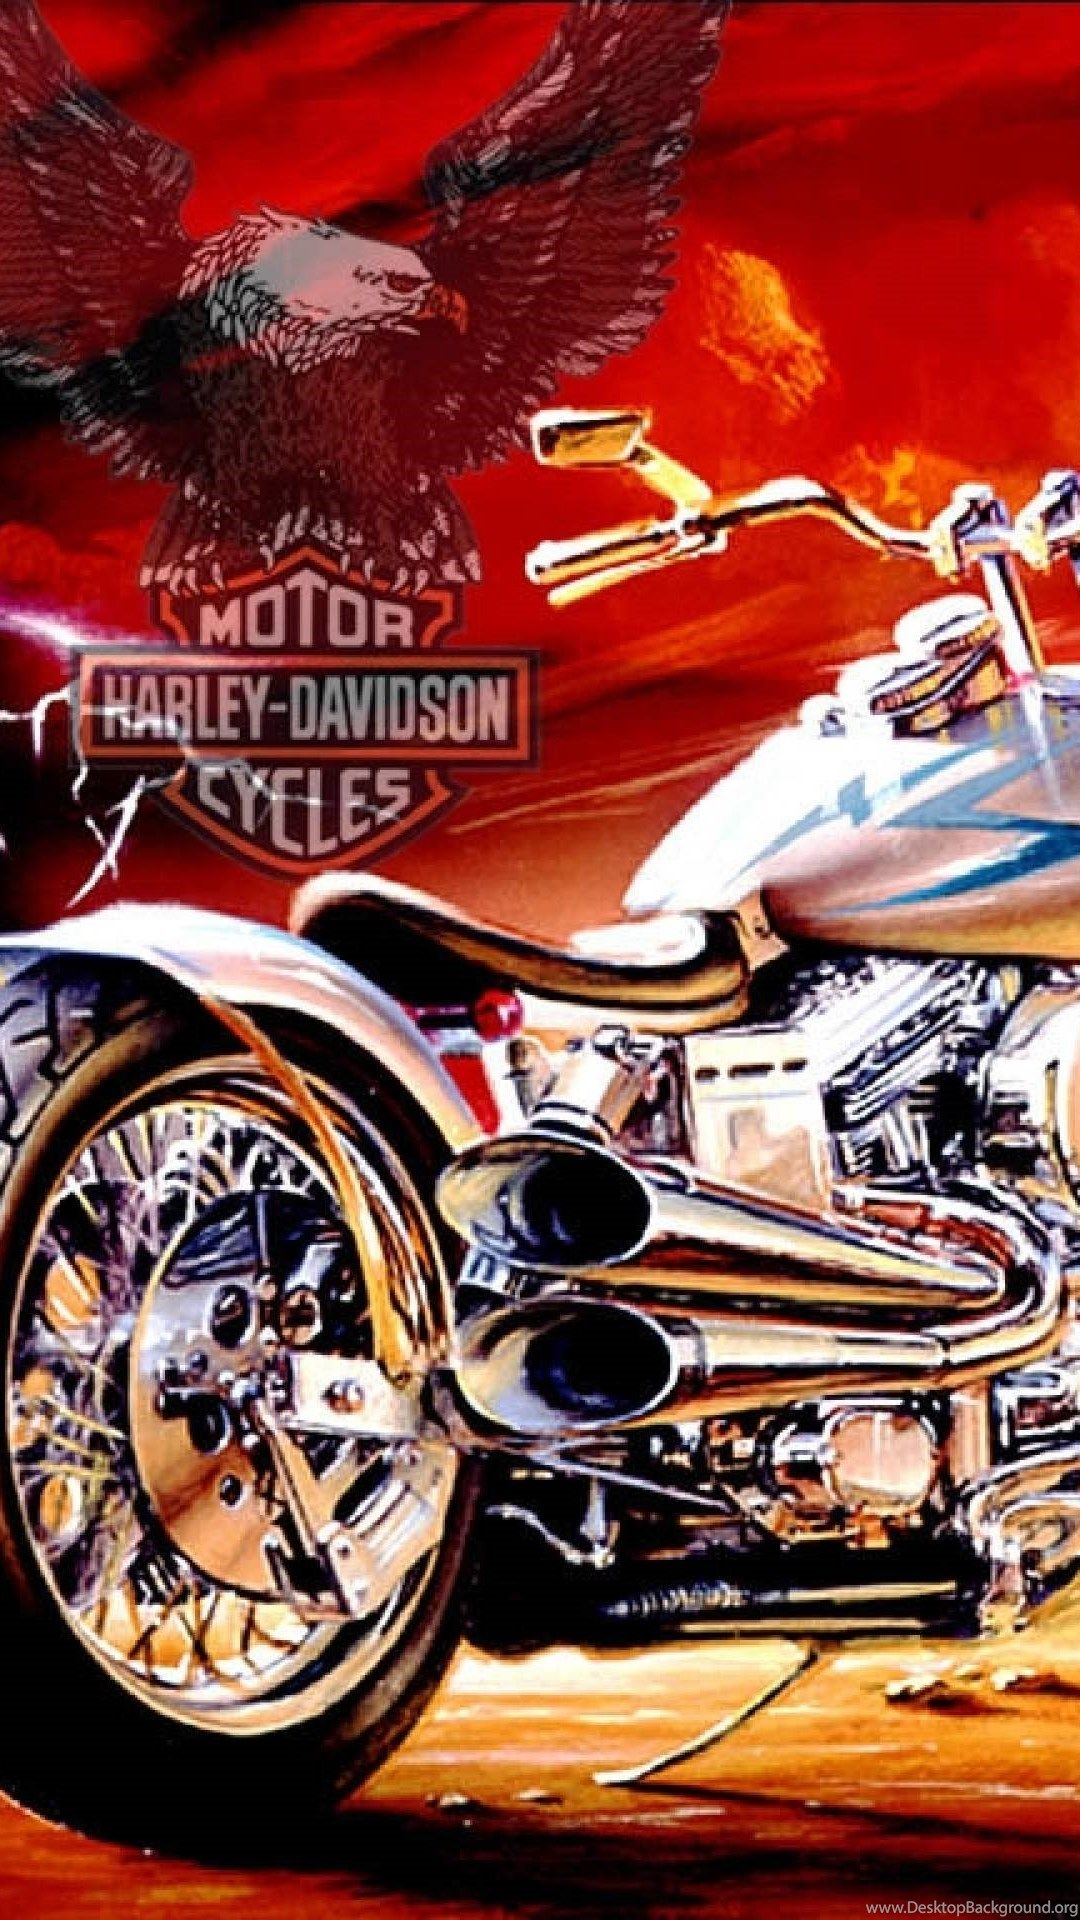 Download Free Harley Davidson Wallpapers Wallpapers Cave Mobile, Android